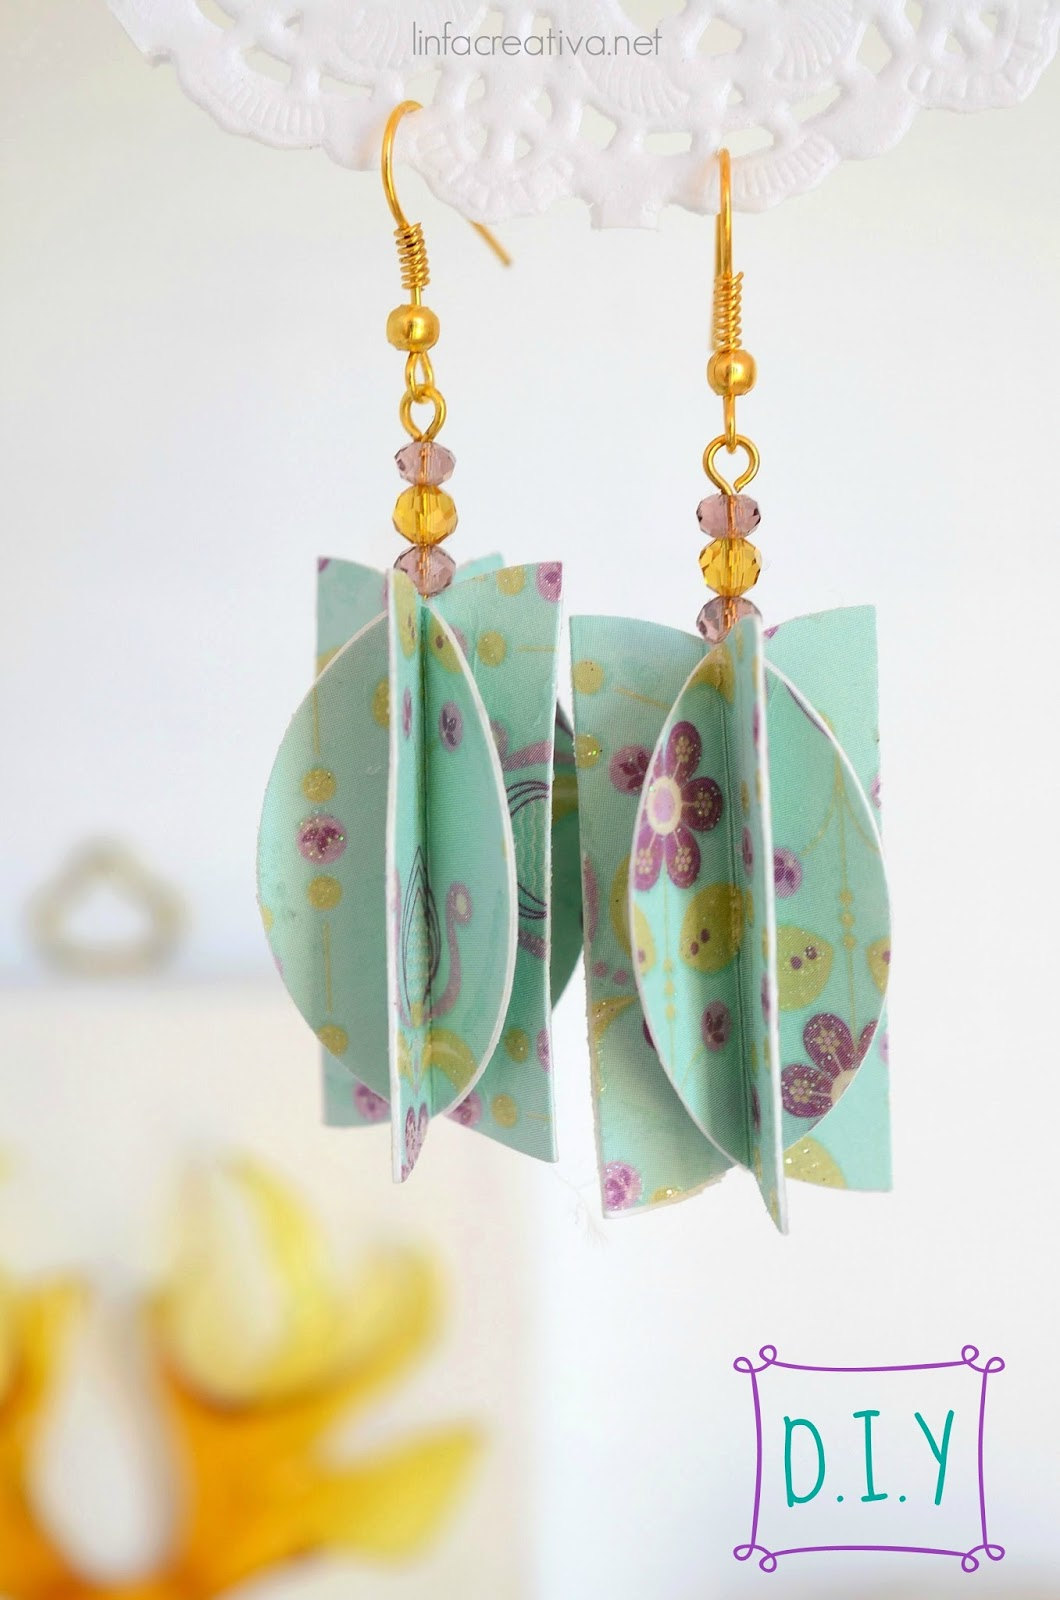 http://www.linfacreativa.net/2015/03/paper-jewels-4-earrings.html